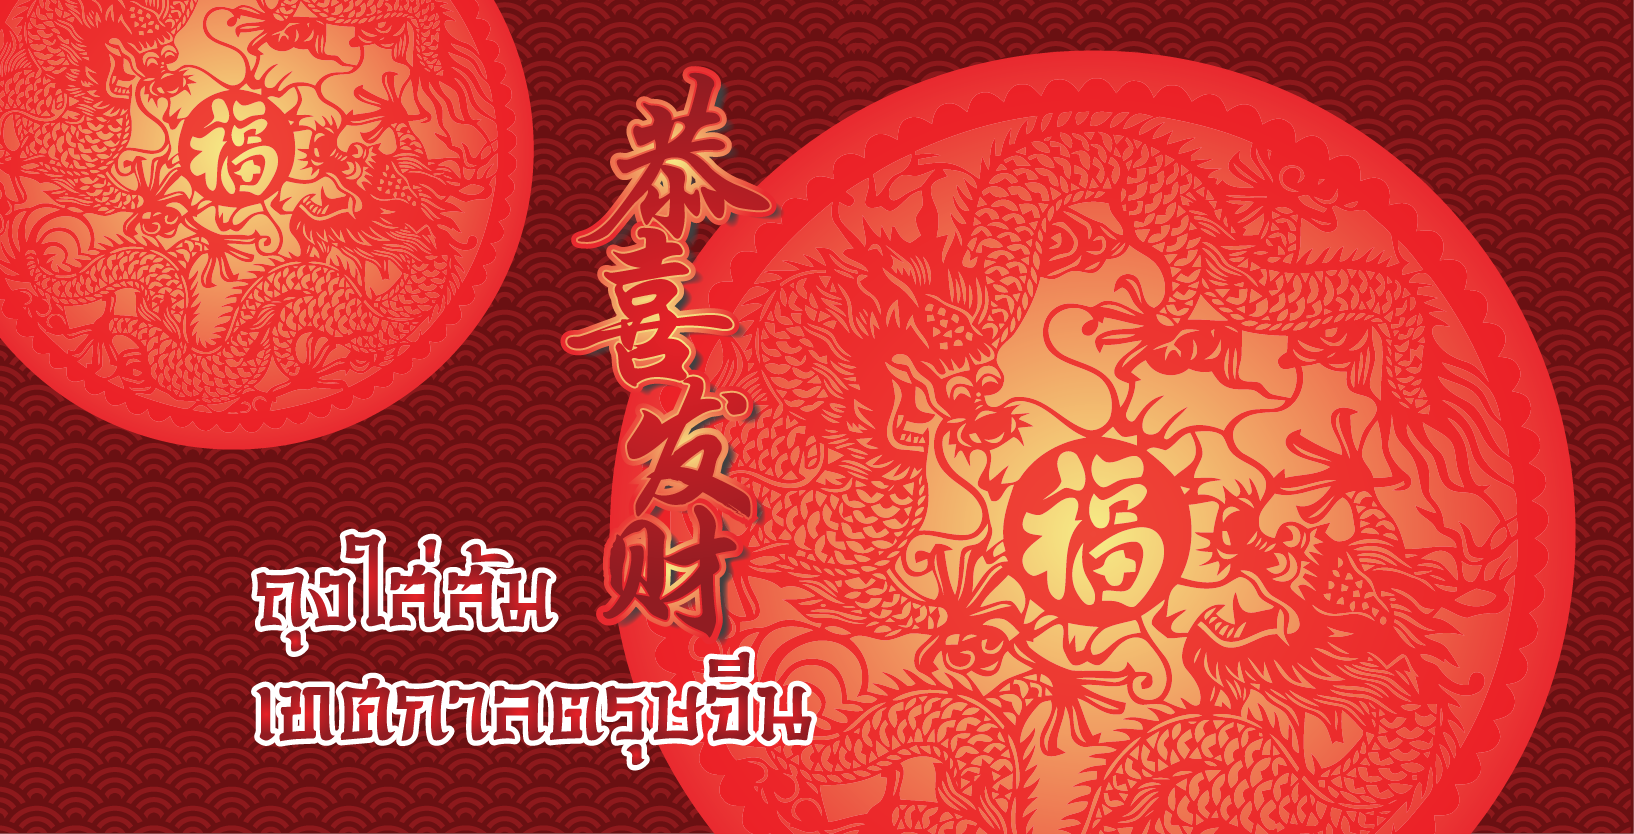 Chinese new year bags cover